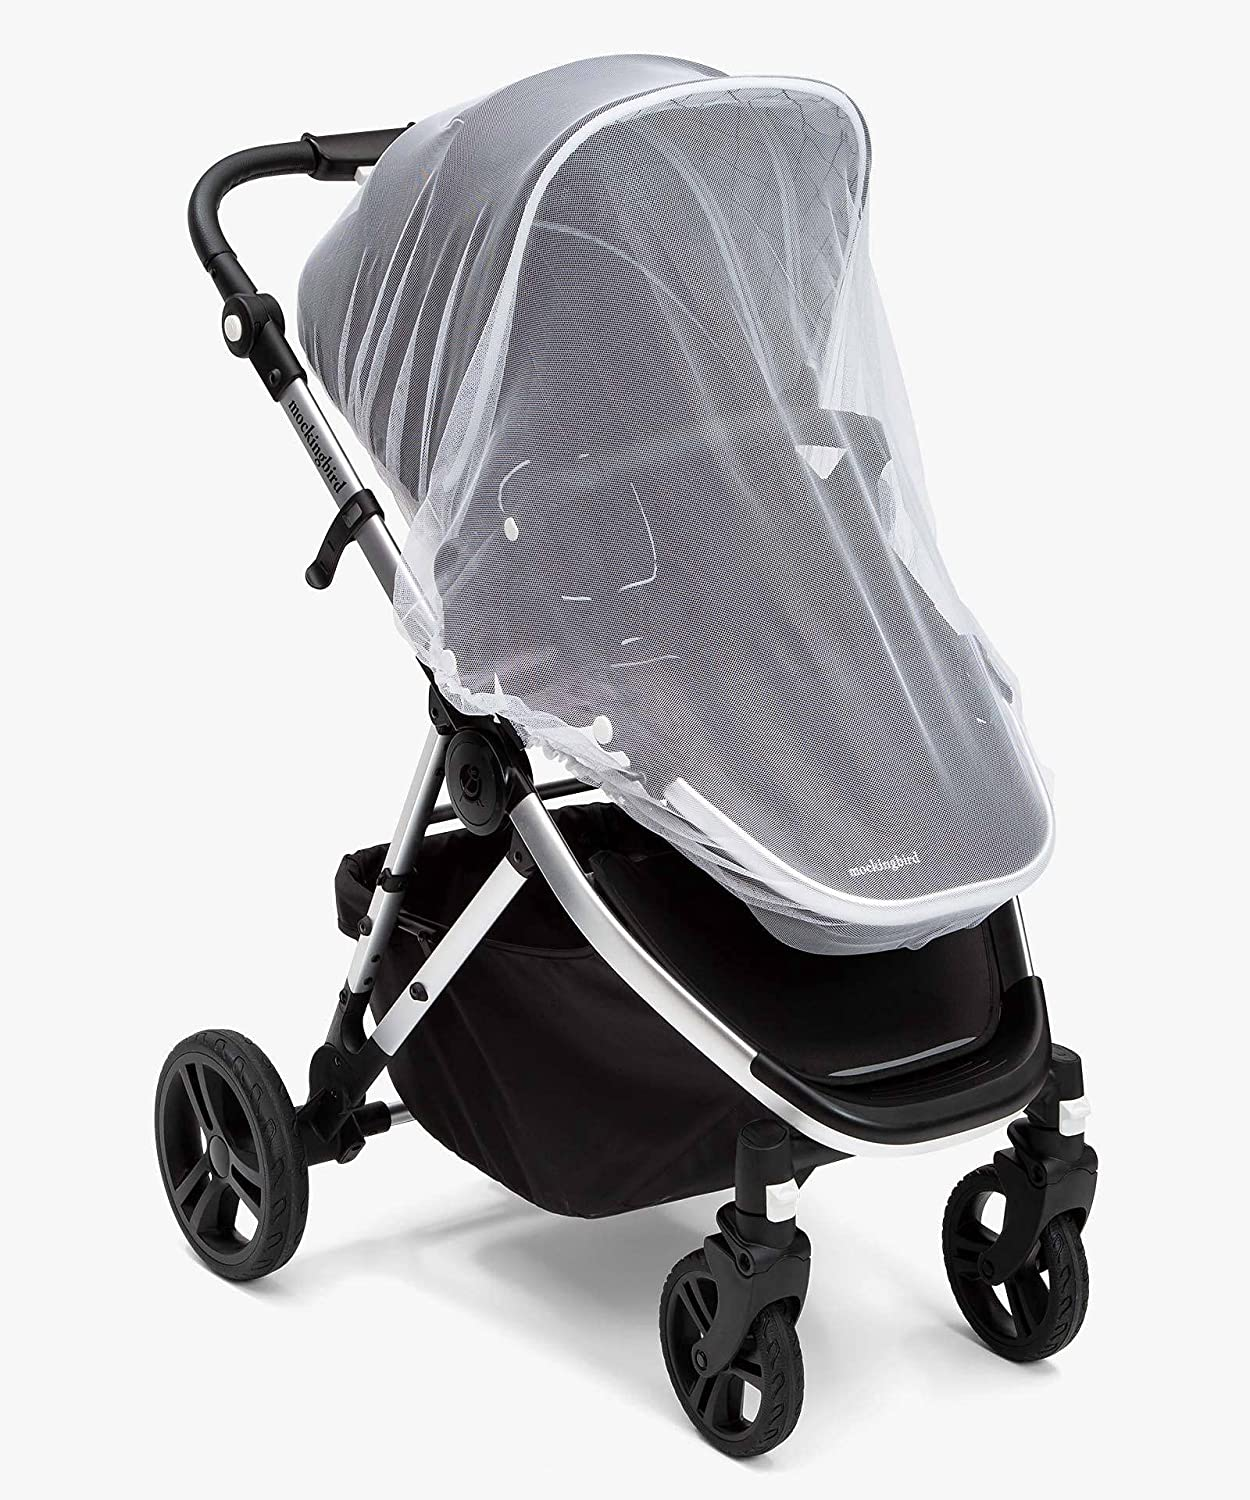 Universal Mosquito Net for Stroller and Car seat,Durable and Breathable Baby Stroller Mosquito Net for Bassinets, Cradles, Playards, Portable Mini Crib(White)